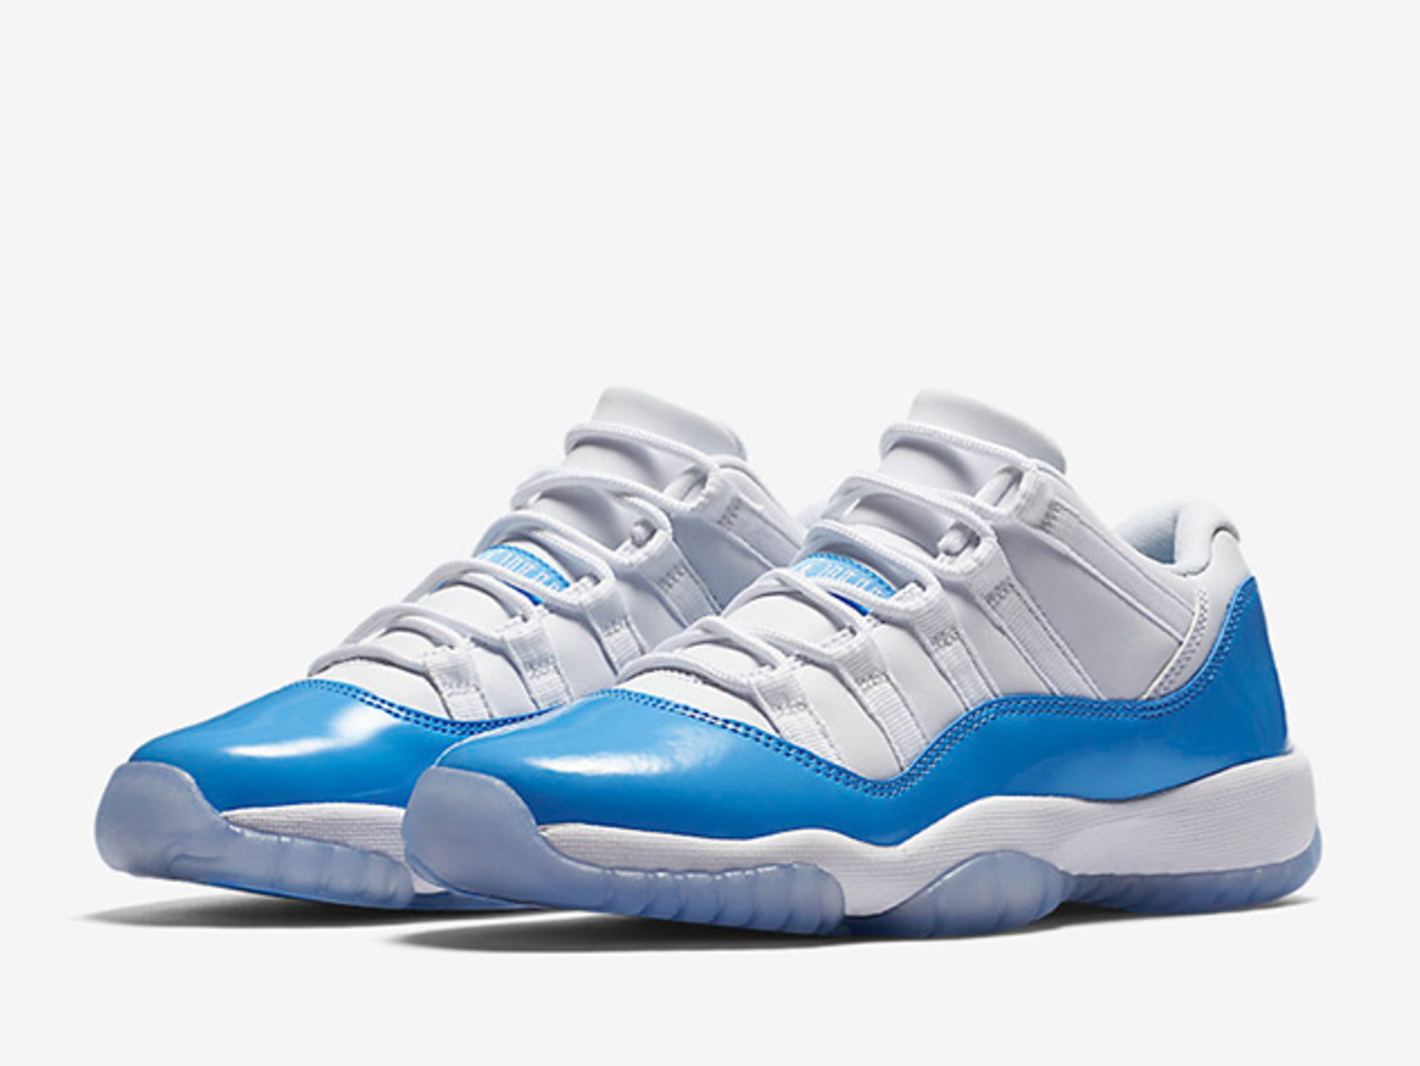 4432f36d4e253 Two Jordan 11 Retro Lows for 2017 - University Blue and Black ...